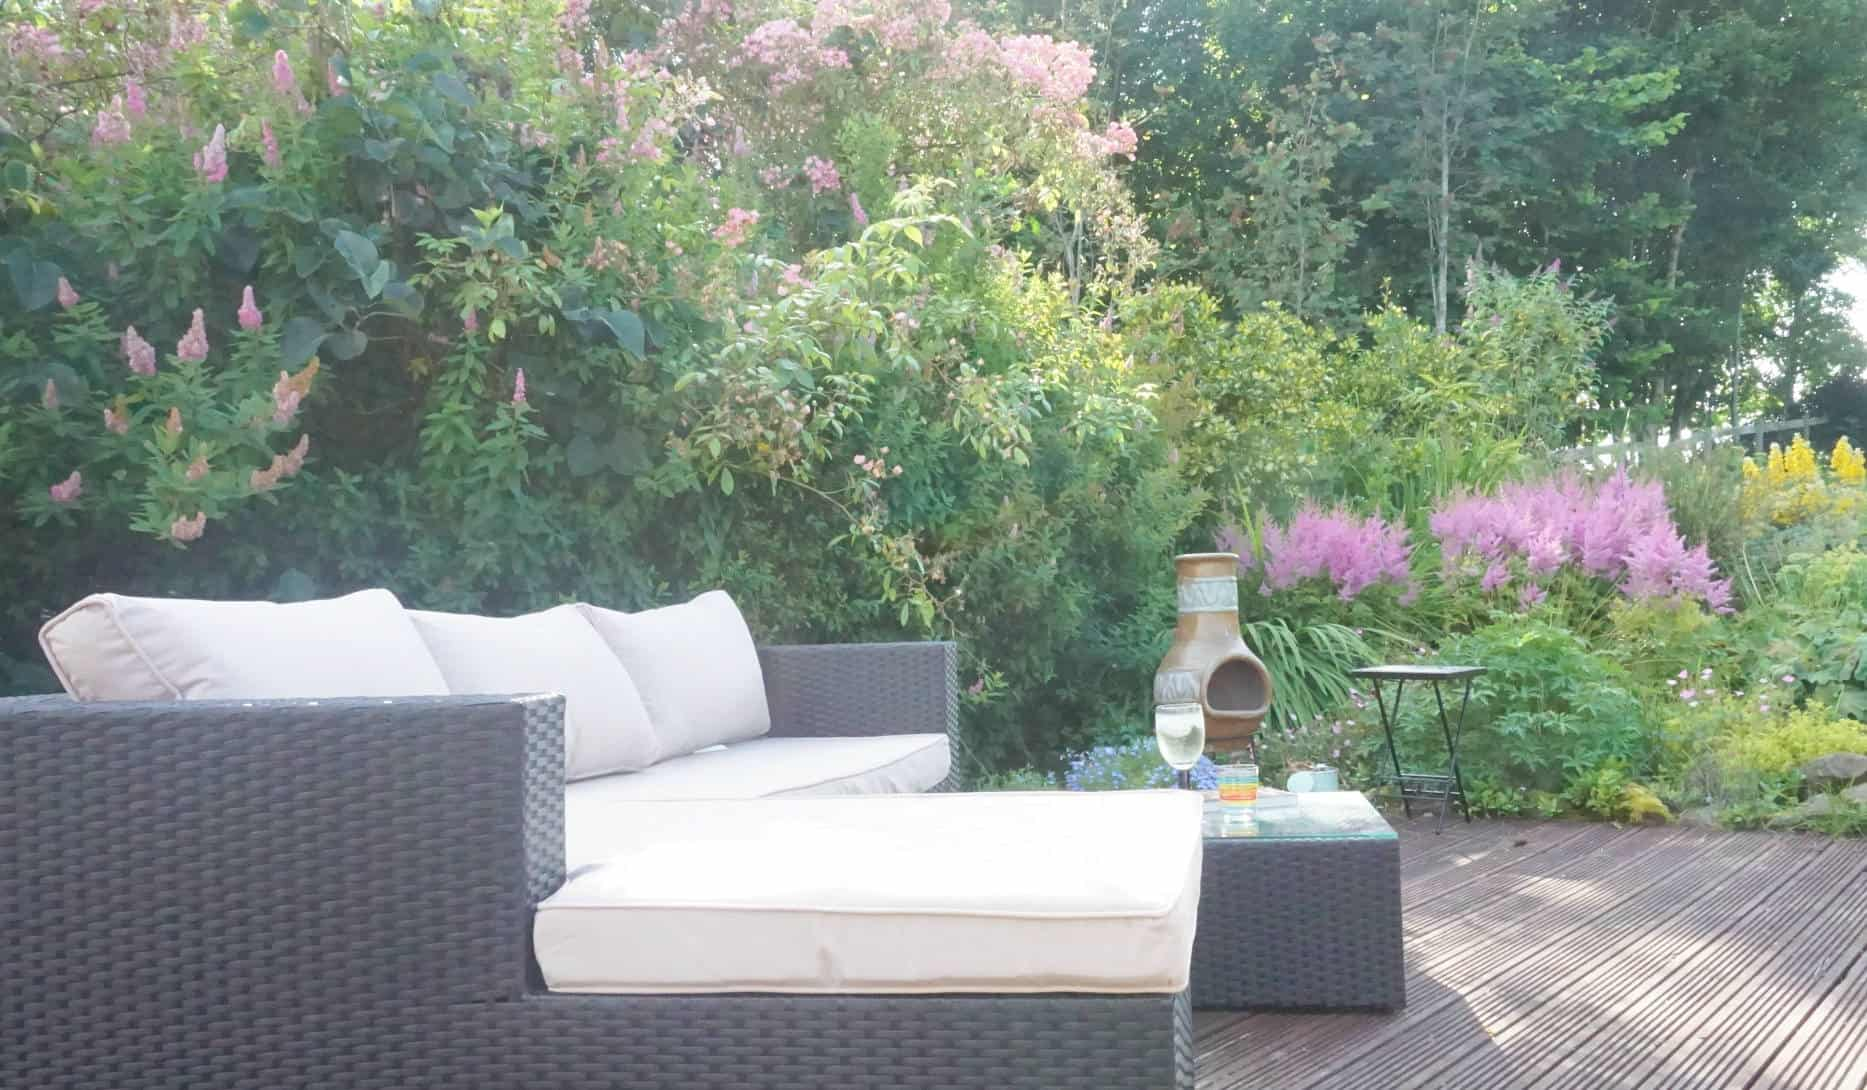 Creating A Family Chill Space In The Garden 6